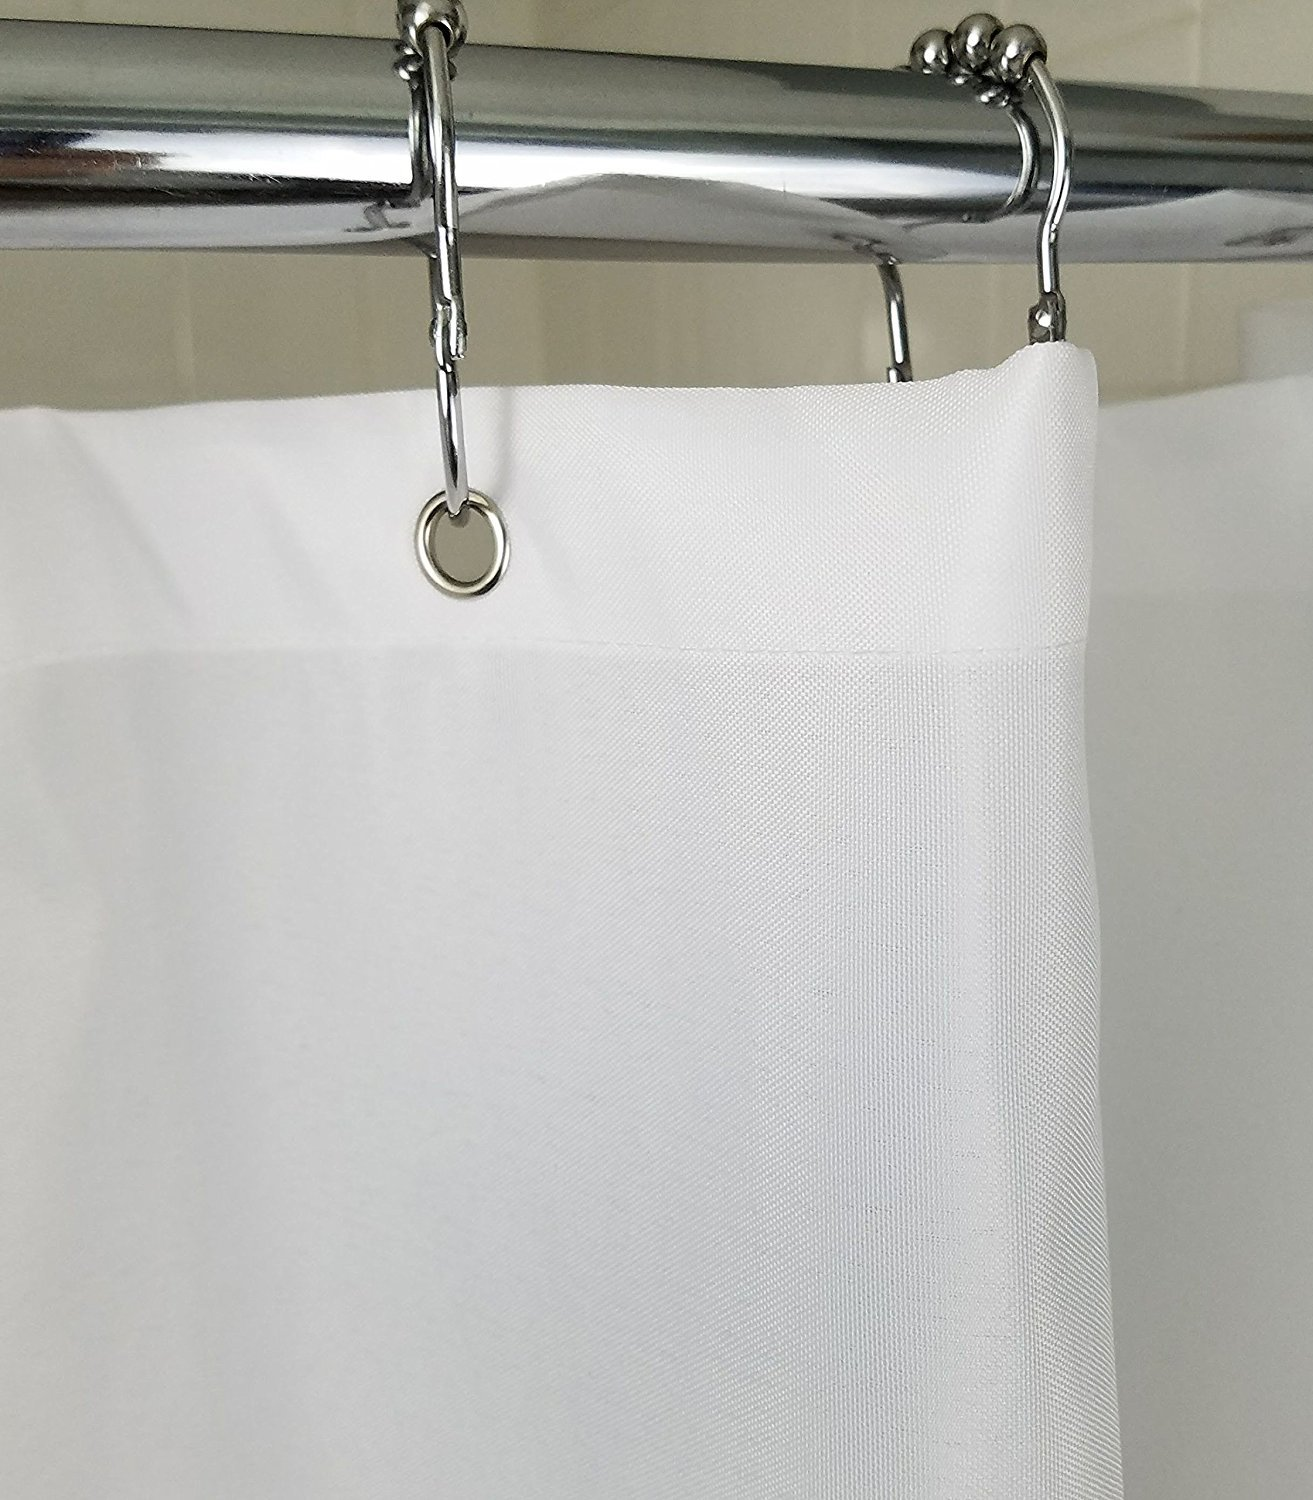 Nylon Waterproof - Soft as Silk - Mildew Resistant Fabric Shower Curtain Liner, 70 Inch x 108 Inch Extra Long - Ivory Home Bargains COMIN16JU017314